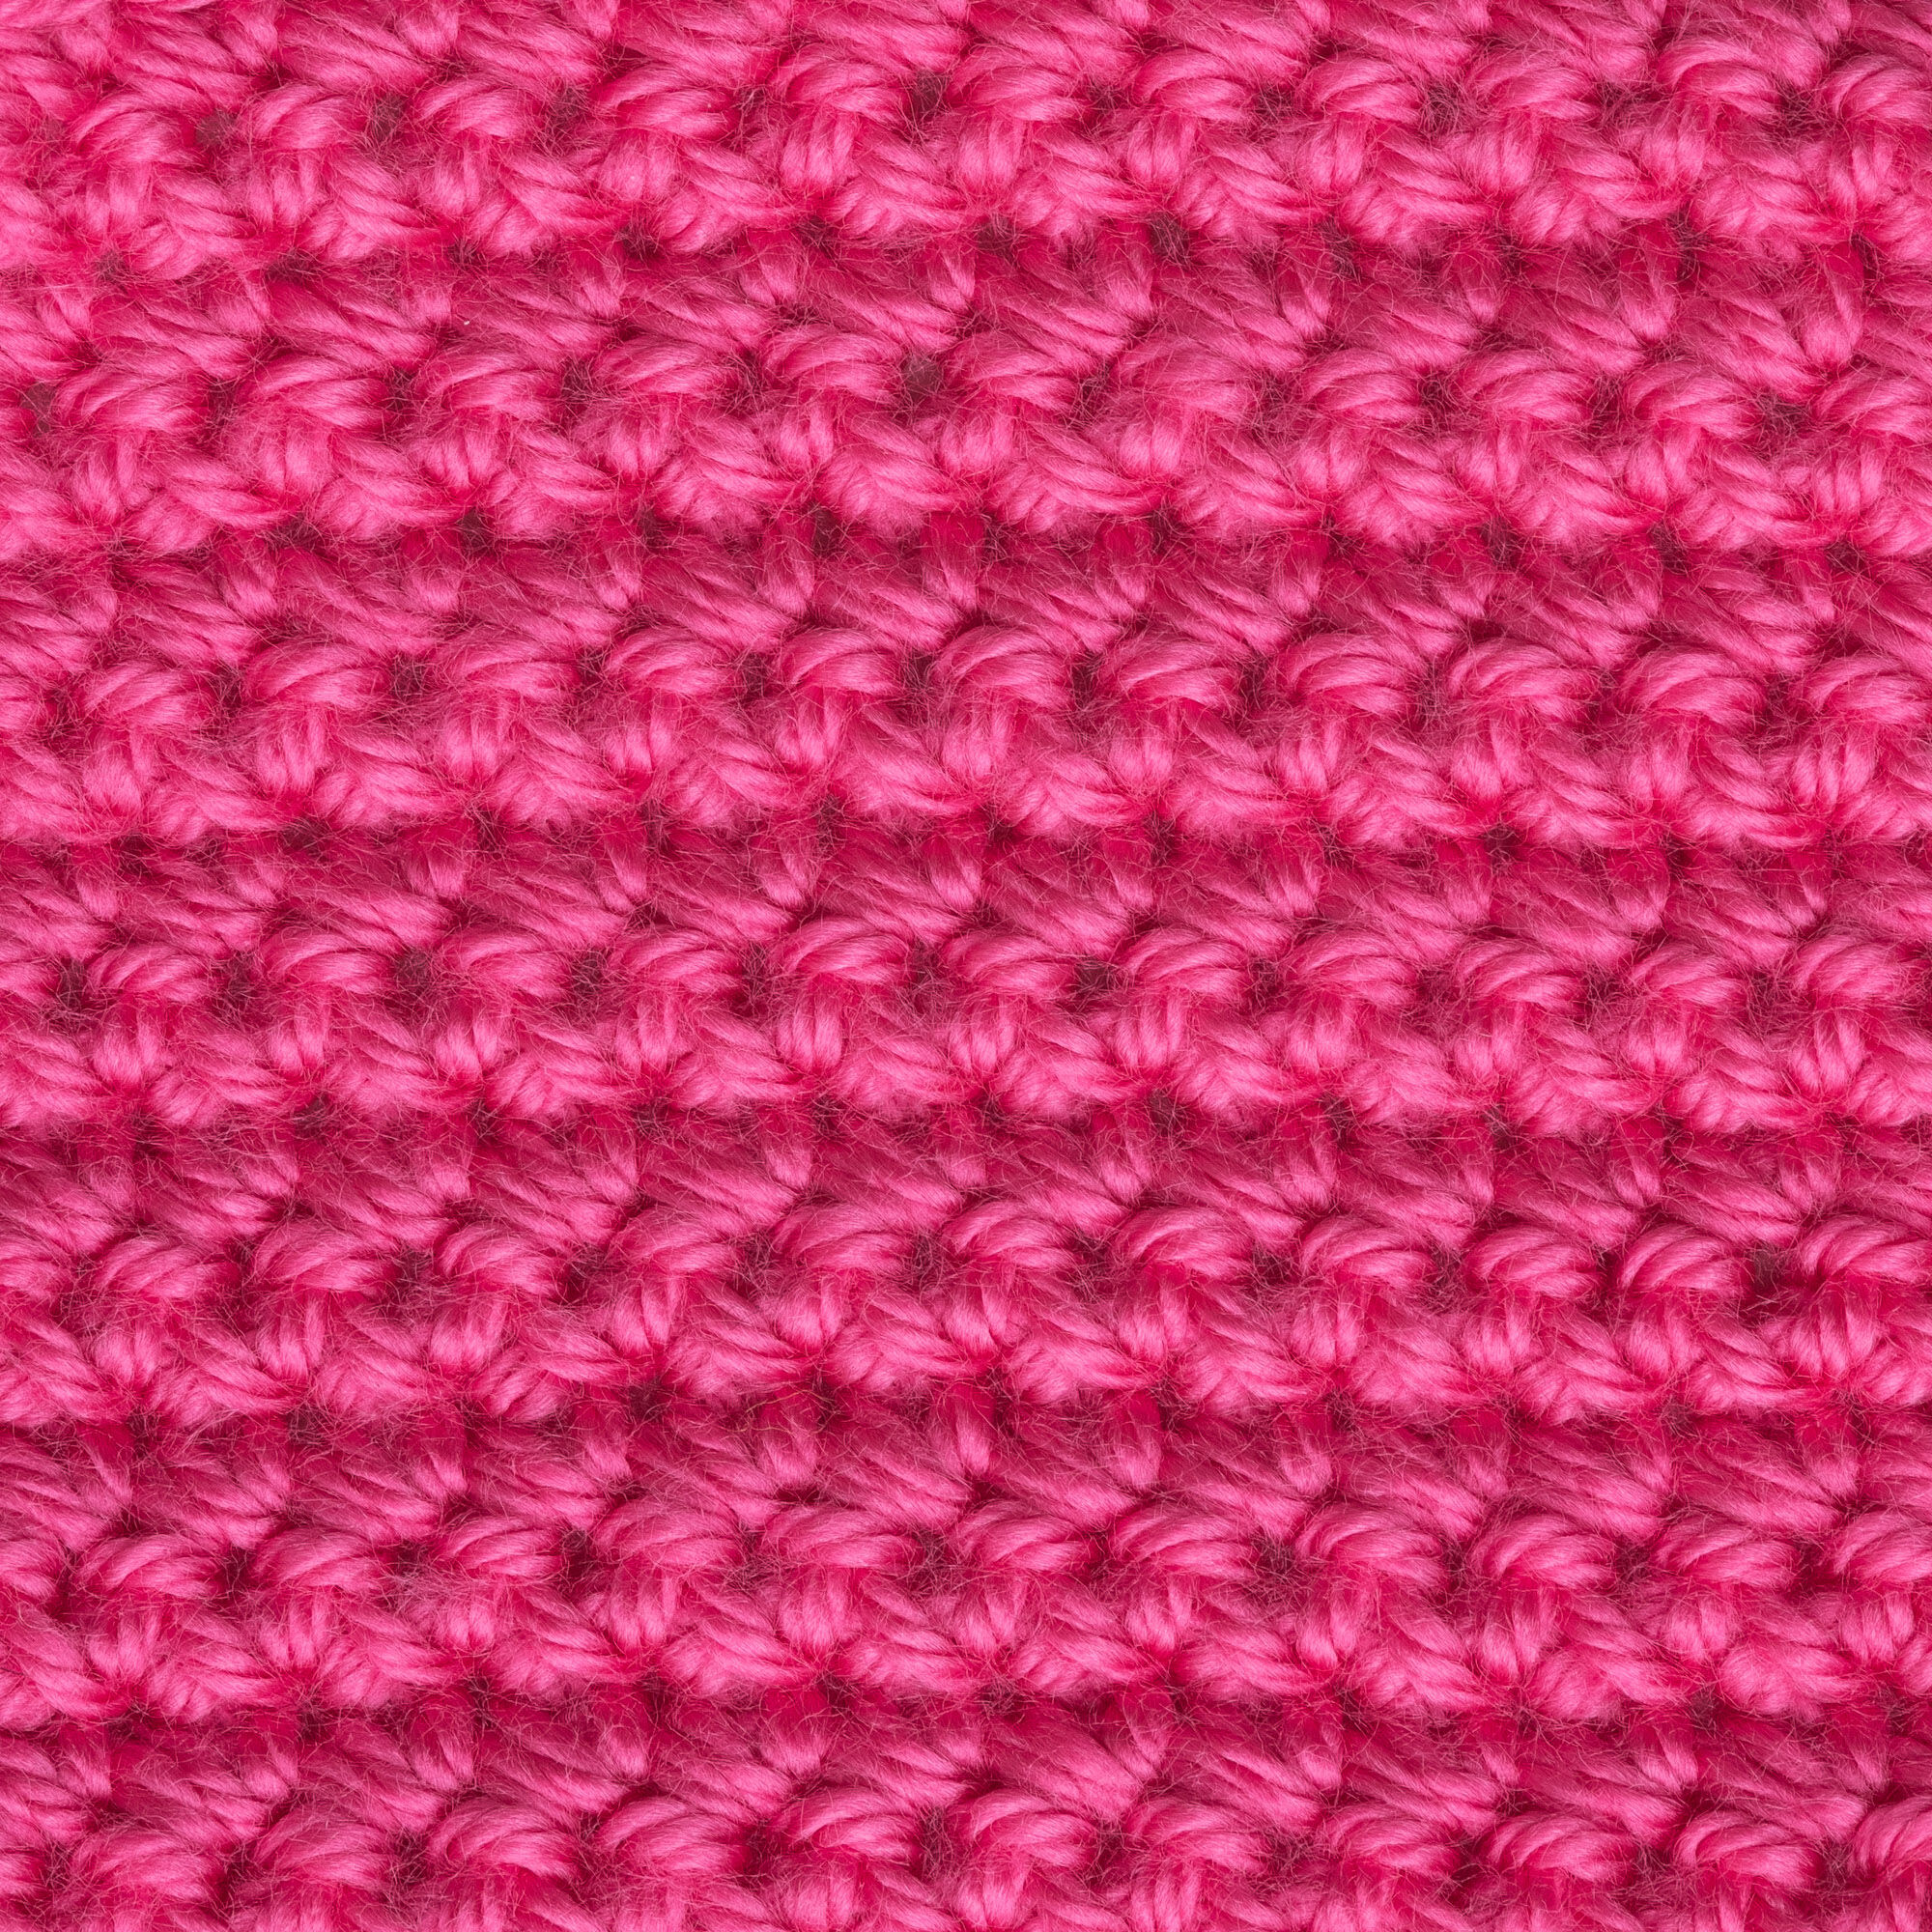 Caron Simply Soft Brites Yarn, Watermelon | Yarnspirations